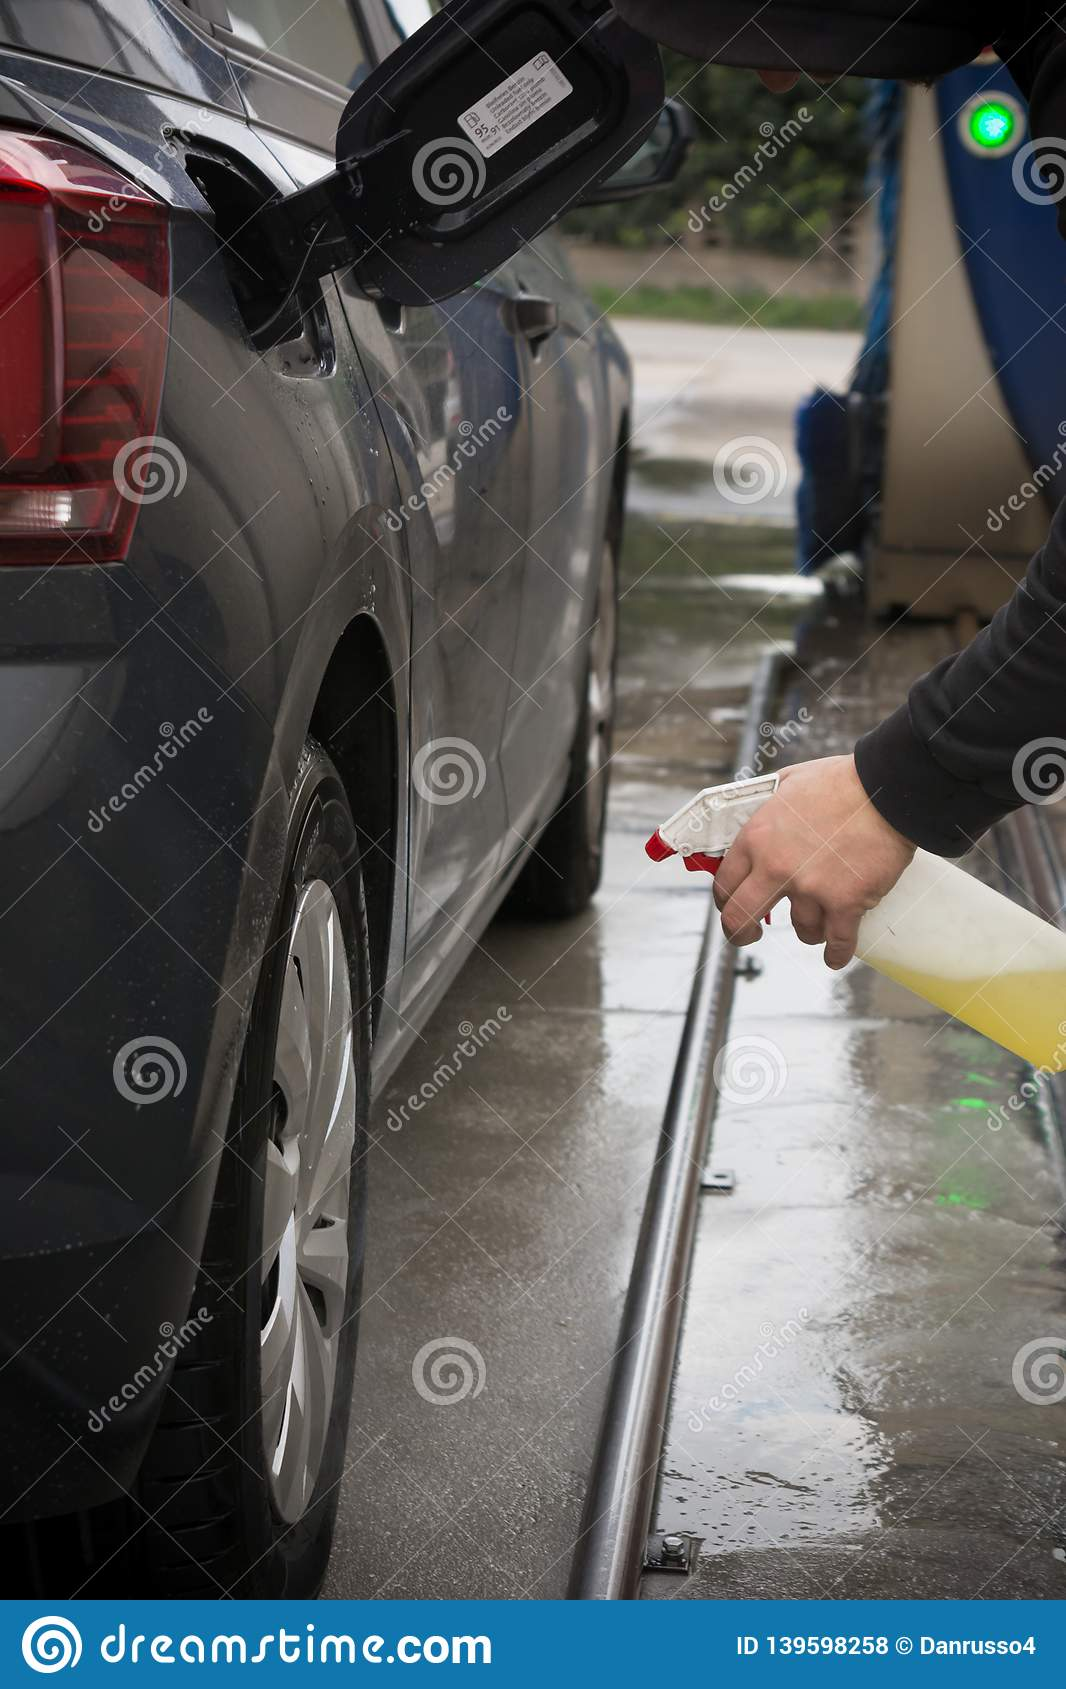 What Kind Of Soap To Wash A Car >> Man Spraying Car Soap For Washing A Car Stock Photo Image